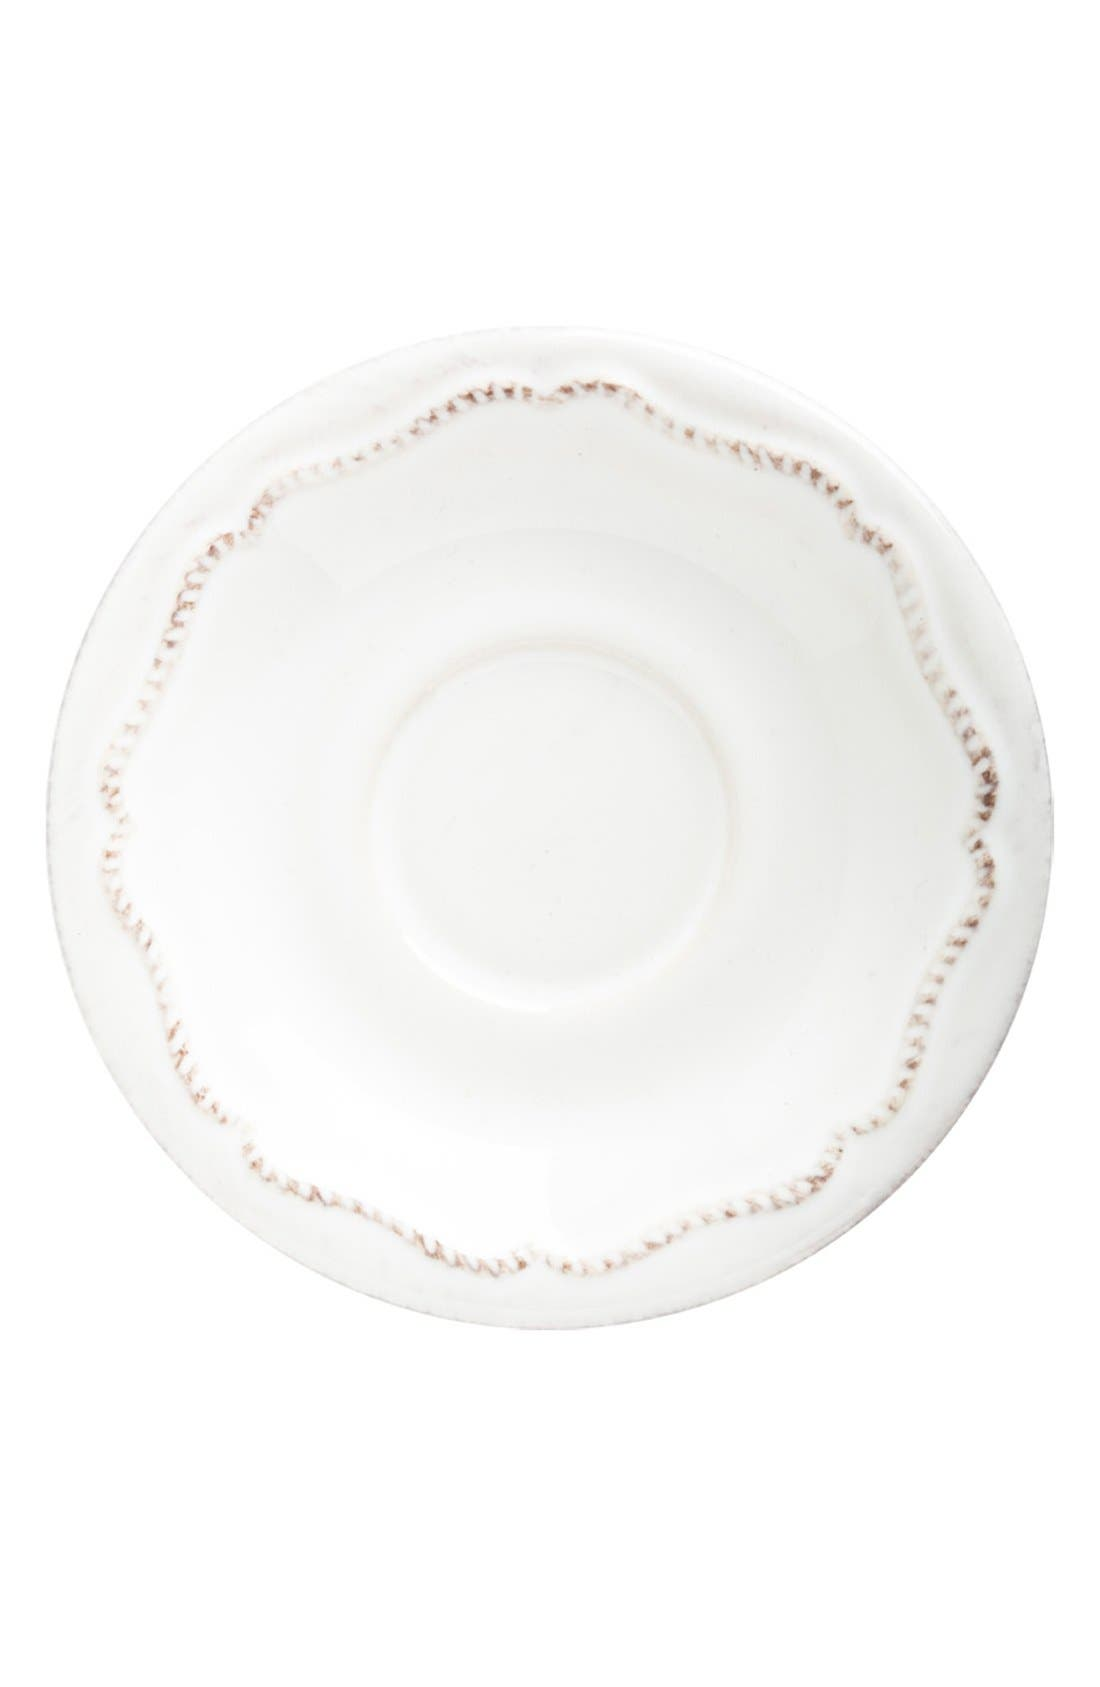 'Berry and Thread' Demitasse Saucer,                             Main thumbnail 1, color,                             WHITEWASH